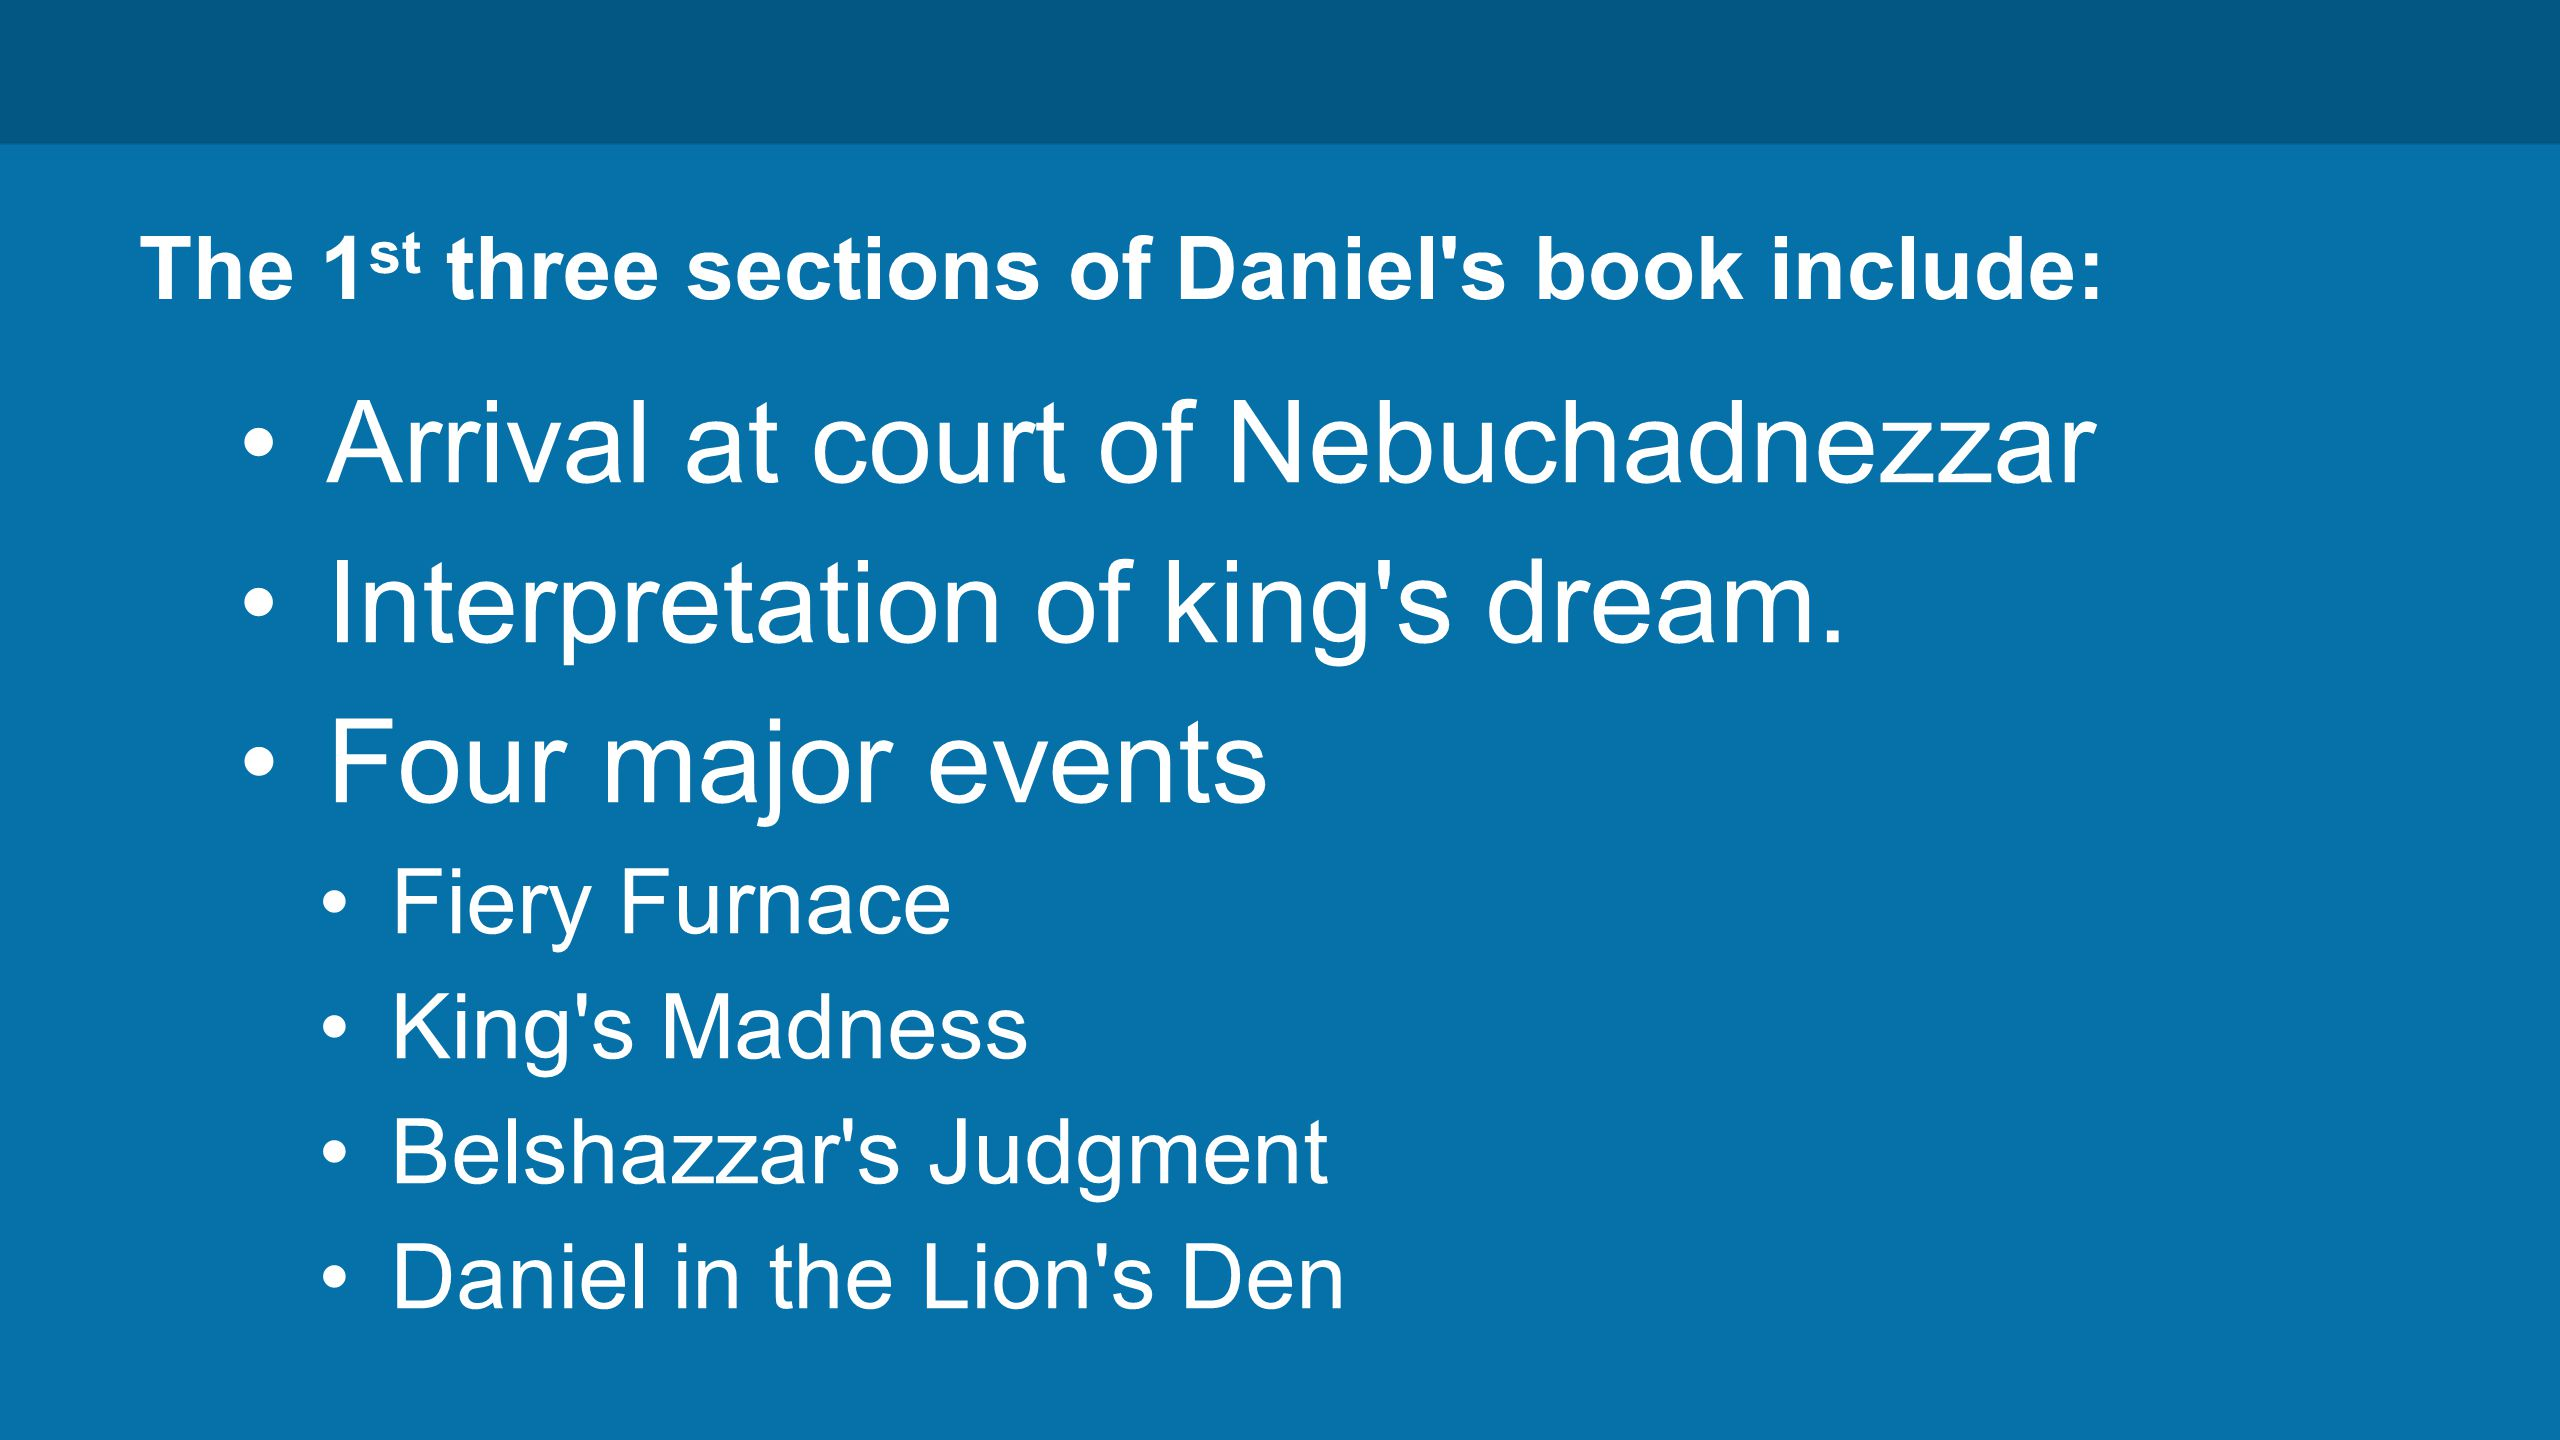 The 1 st three sections of Daniel s book include: Arrival at court of Nebuchadnezzar Interpretation of king s dream.